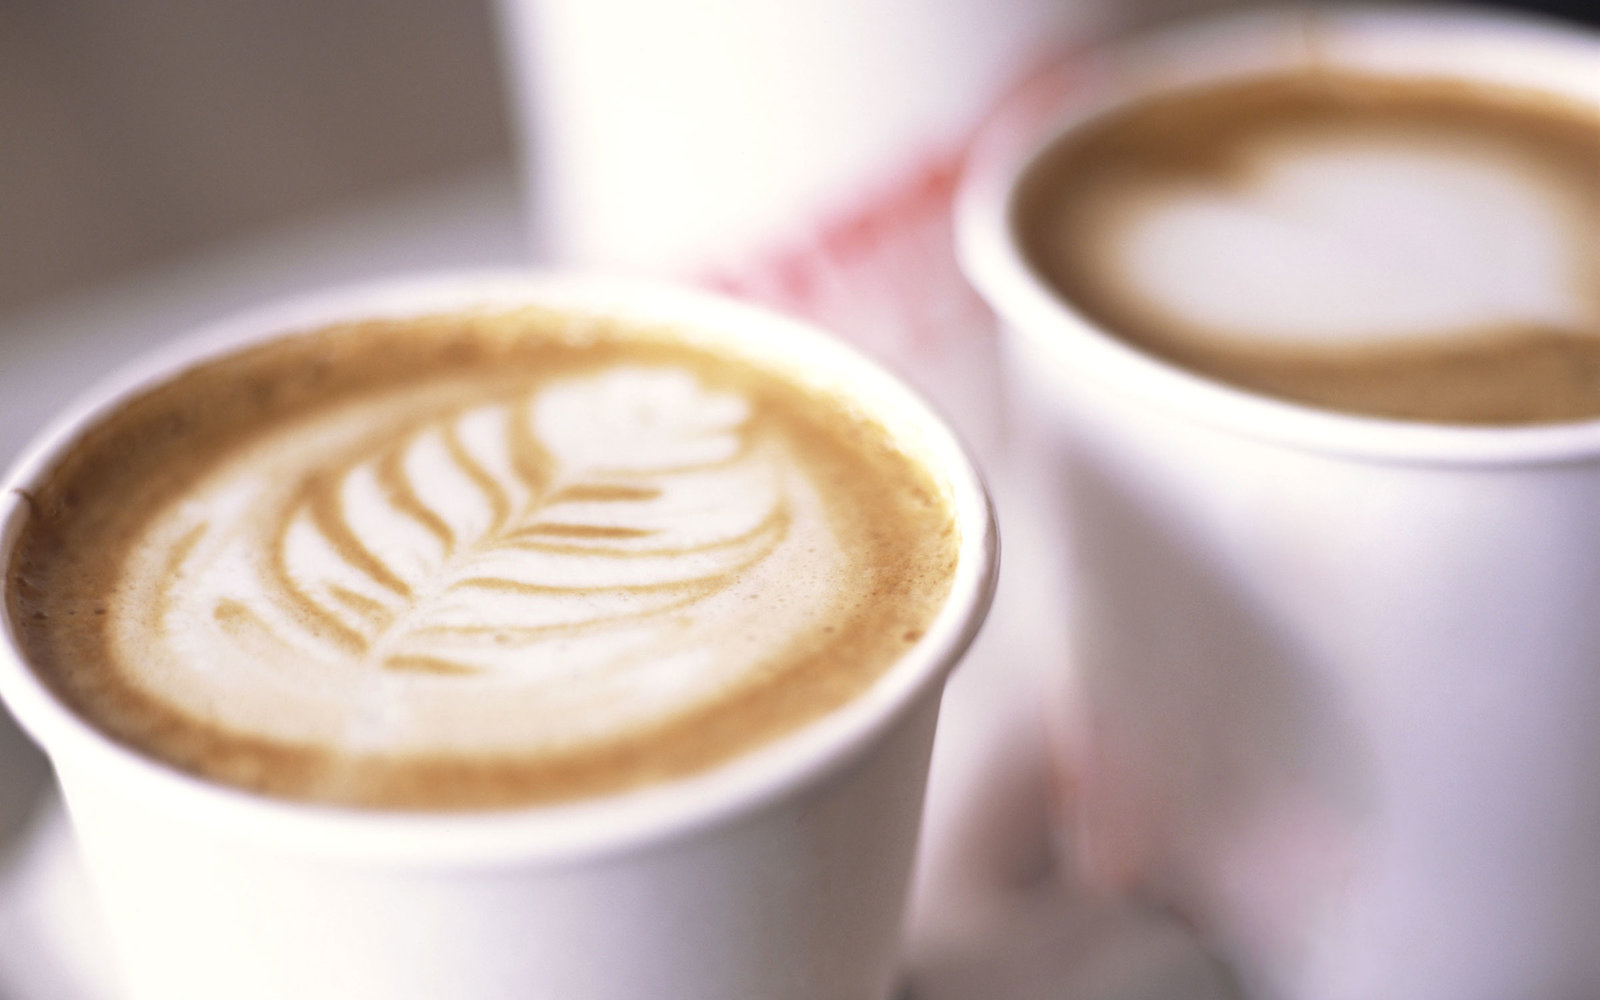 Where You Should Live Based on Your Coffee Order